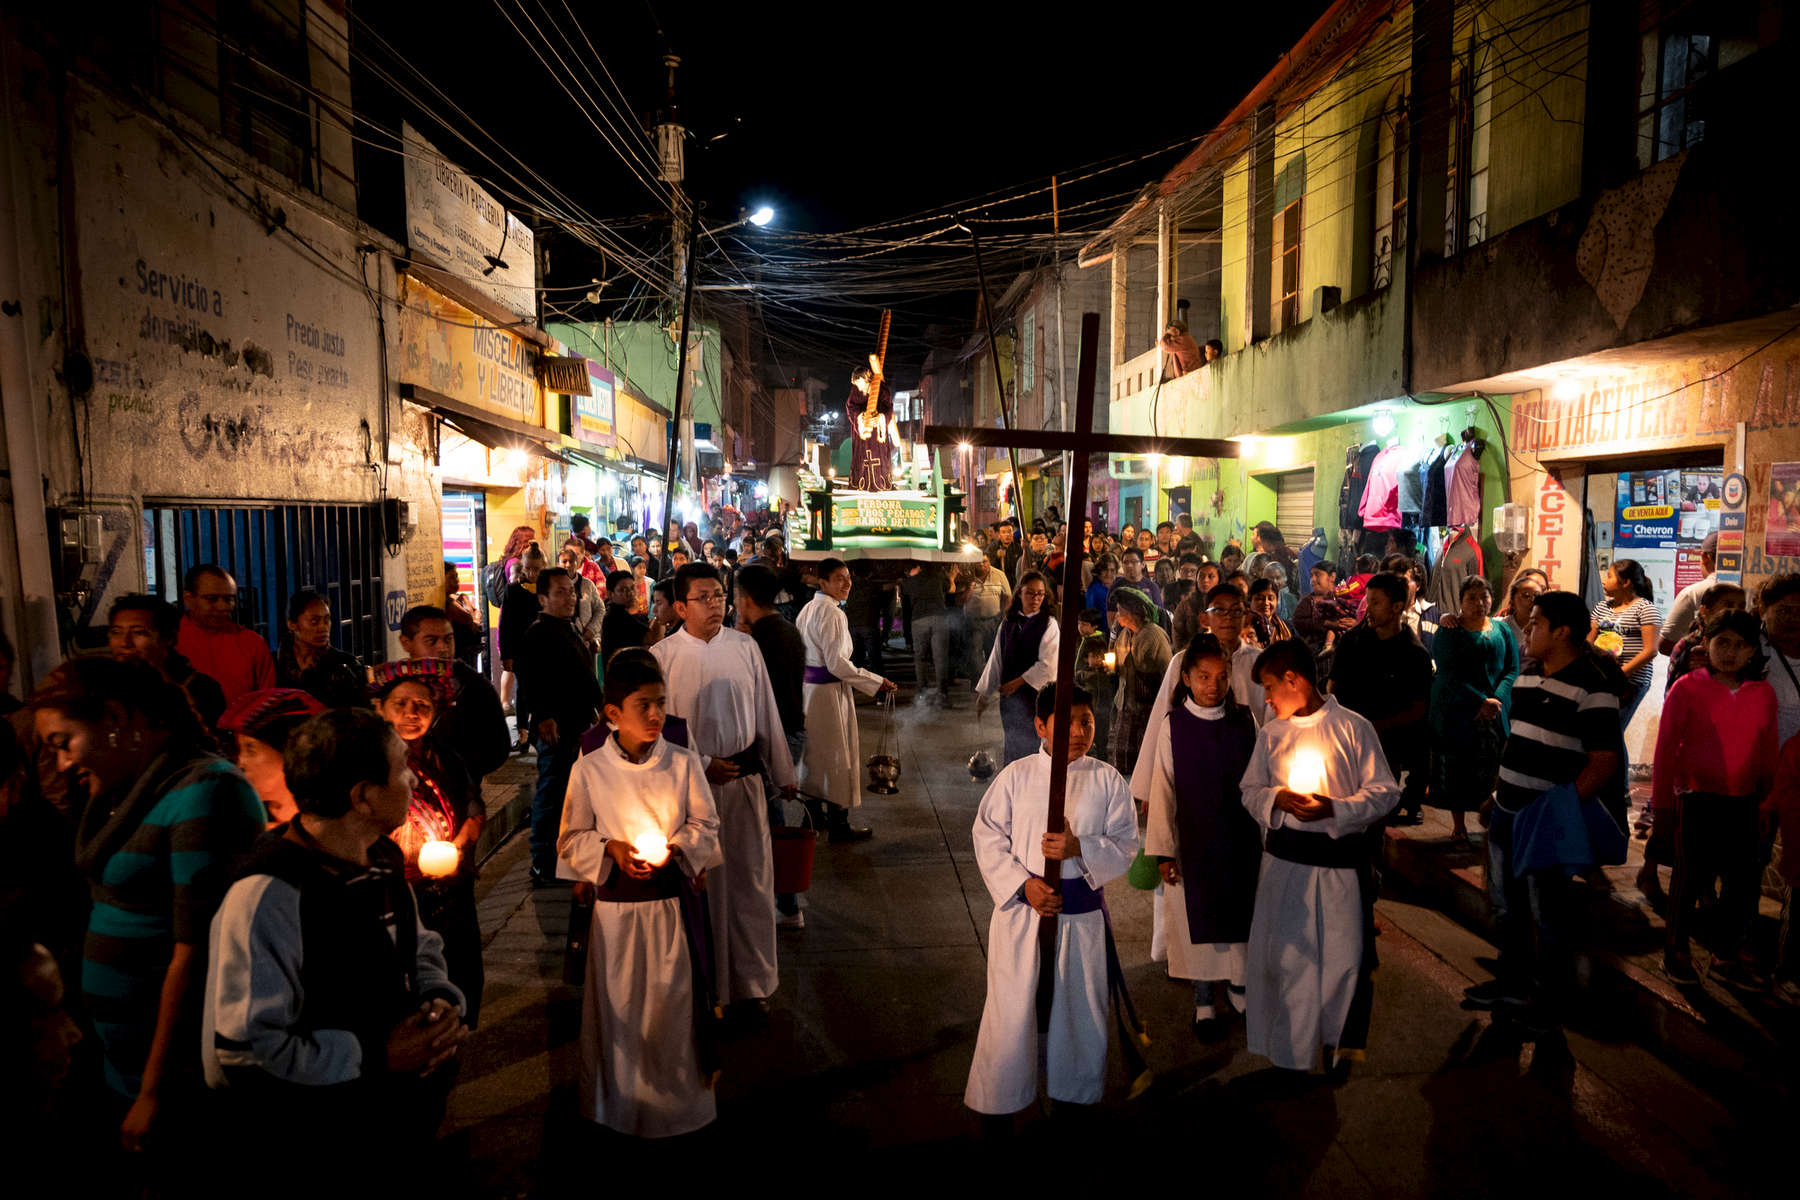 Catholic parishioners carry an anda, or float, with a life-size representation of Jesus during a procession to each of the Stations of the Cross during Lent, April 5, 2019, in Panajachel, Guatemala.